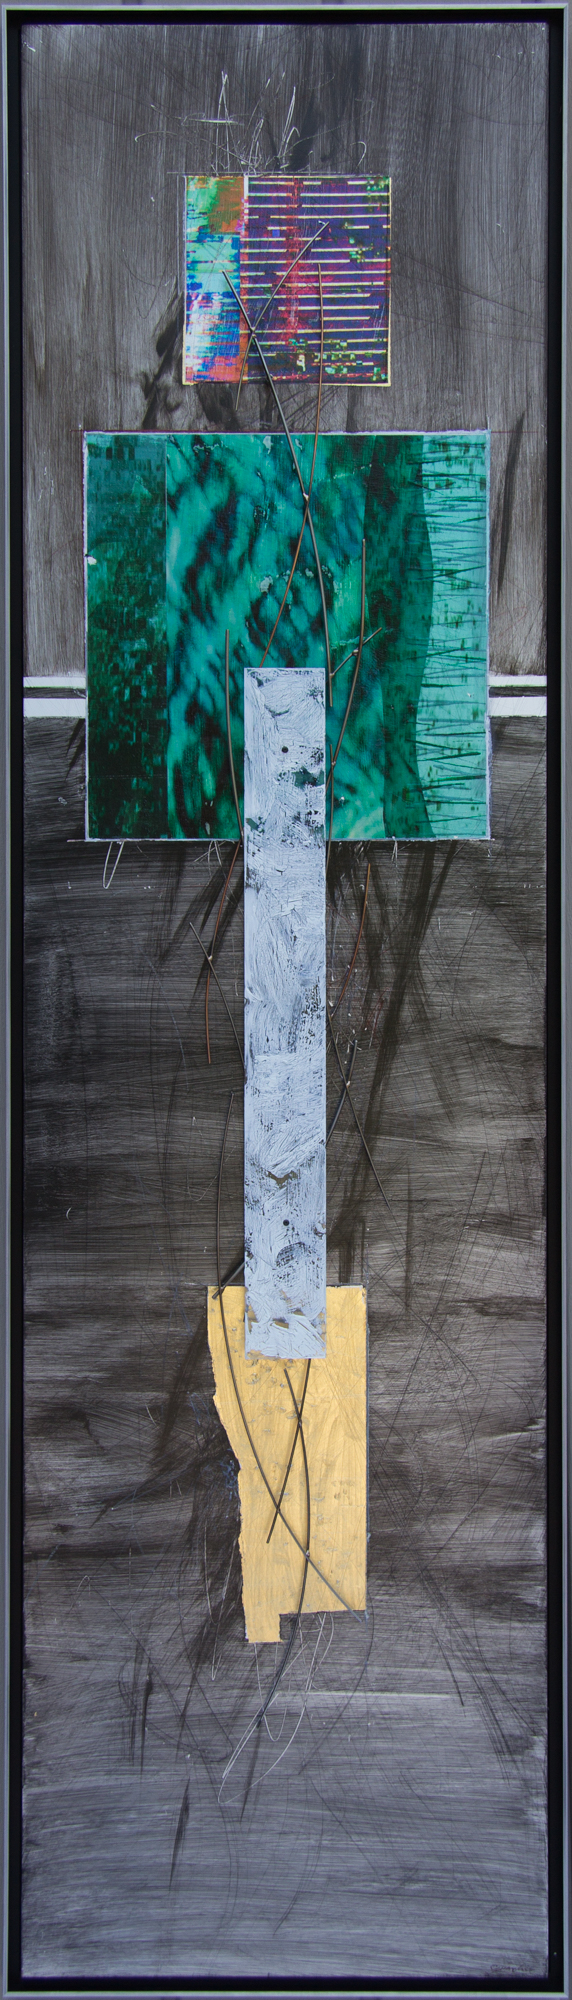 Water Message 48 x 13, Image transfer and pigments on aluminum with sculptural steel and polycarbonate structure.